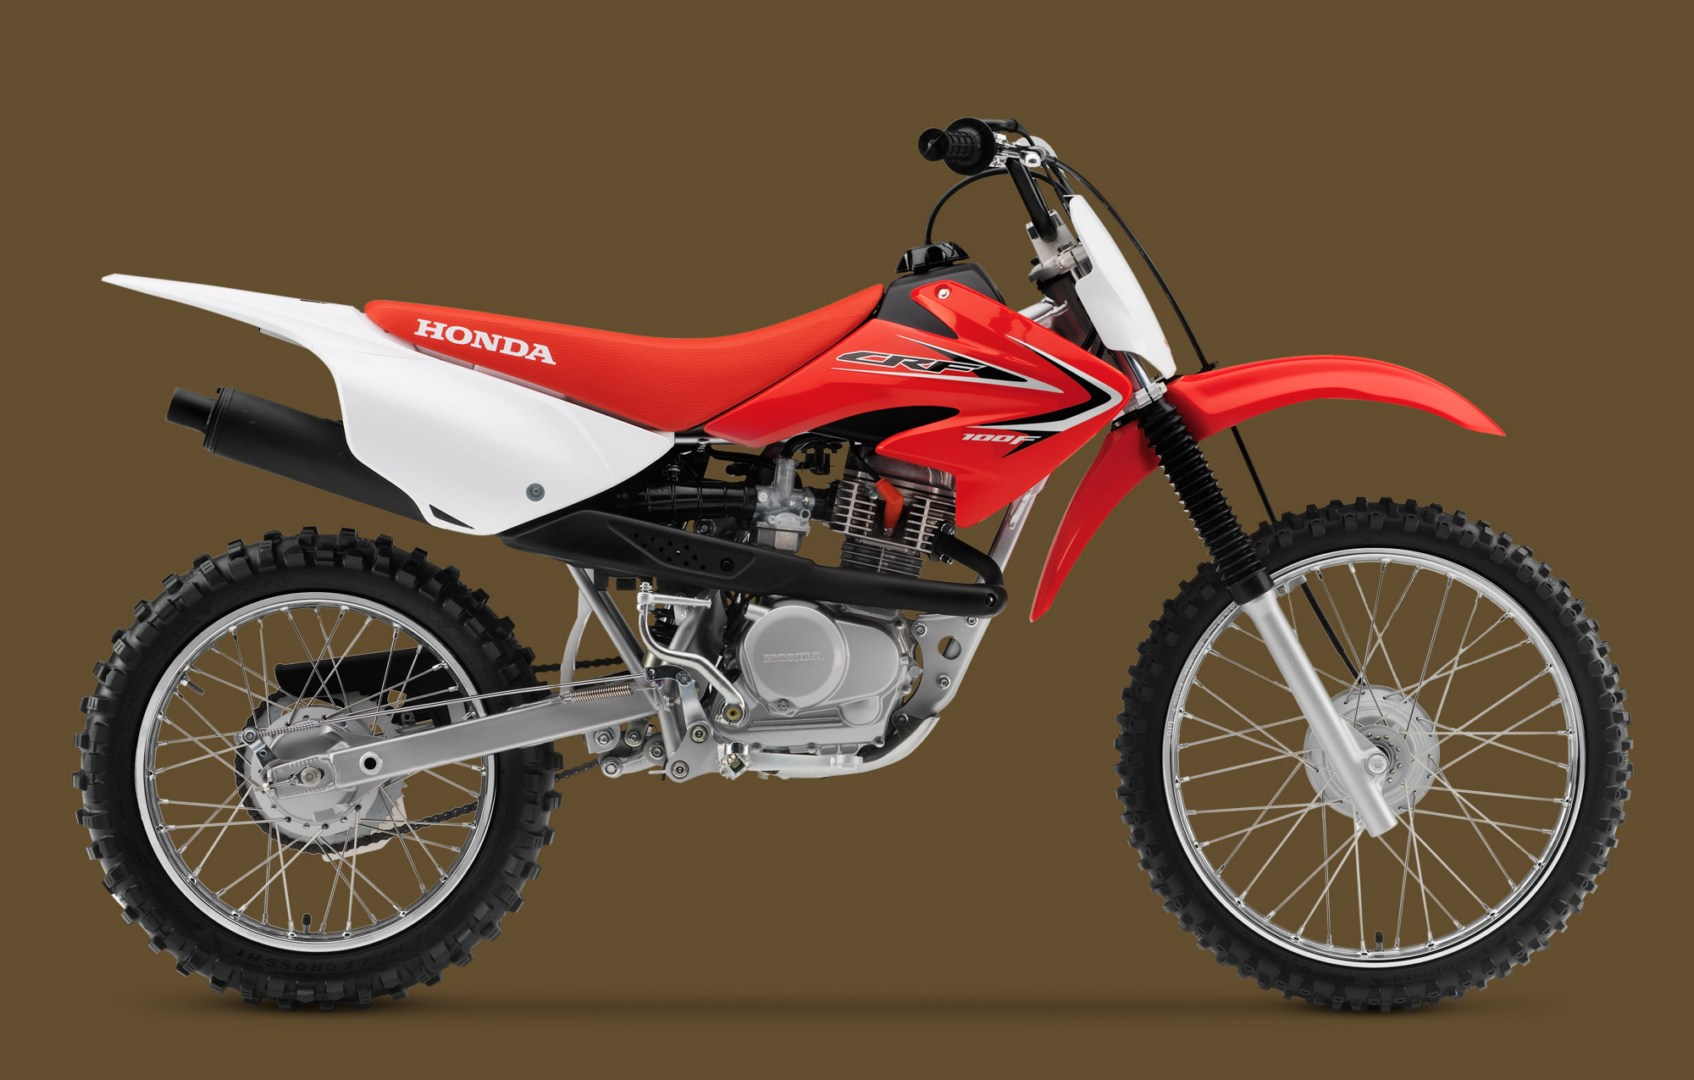 2013 Honda Crf100f The Dirt Bike Bridging Children And